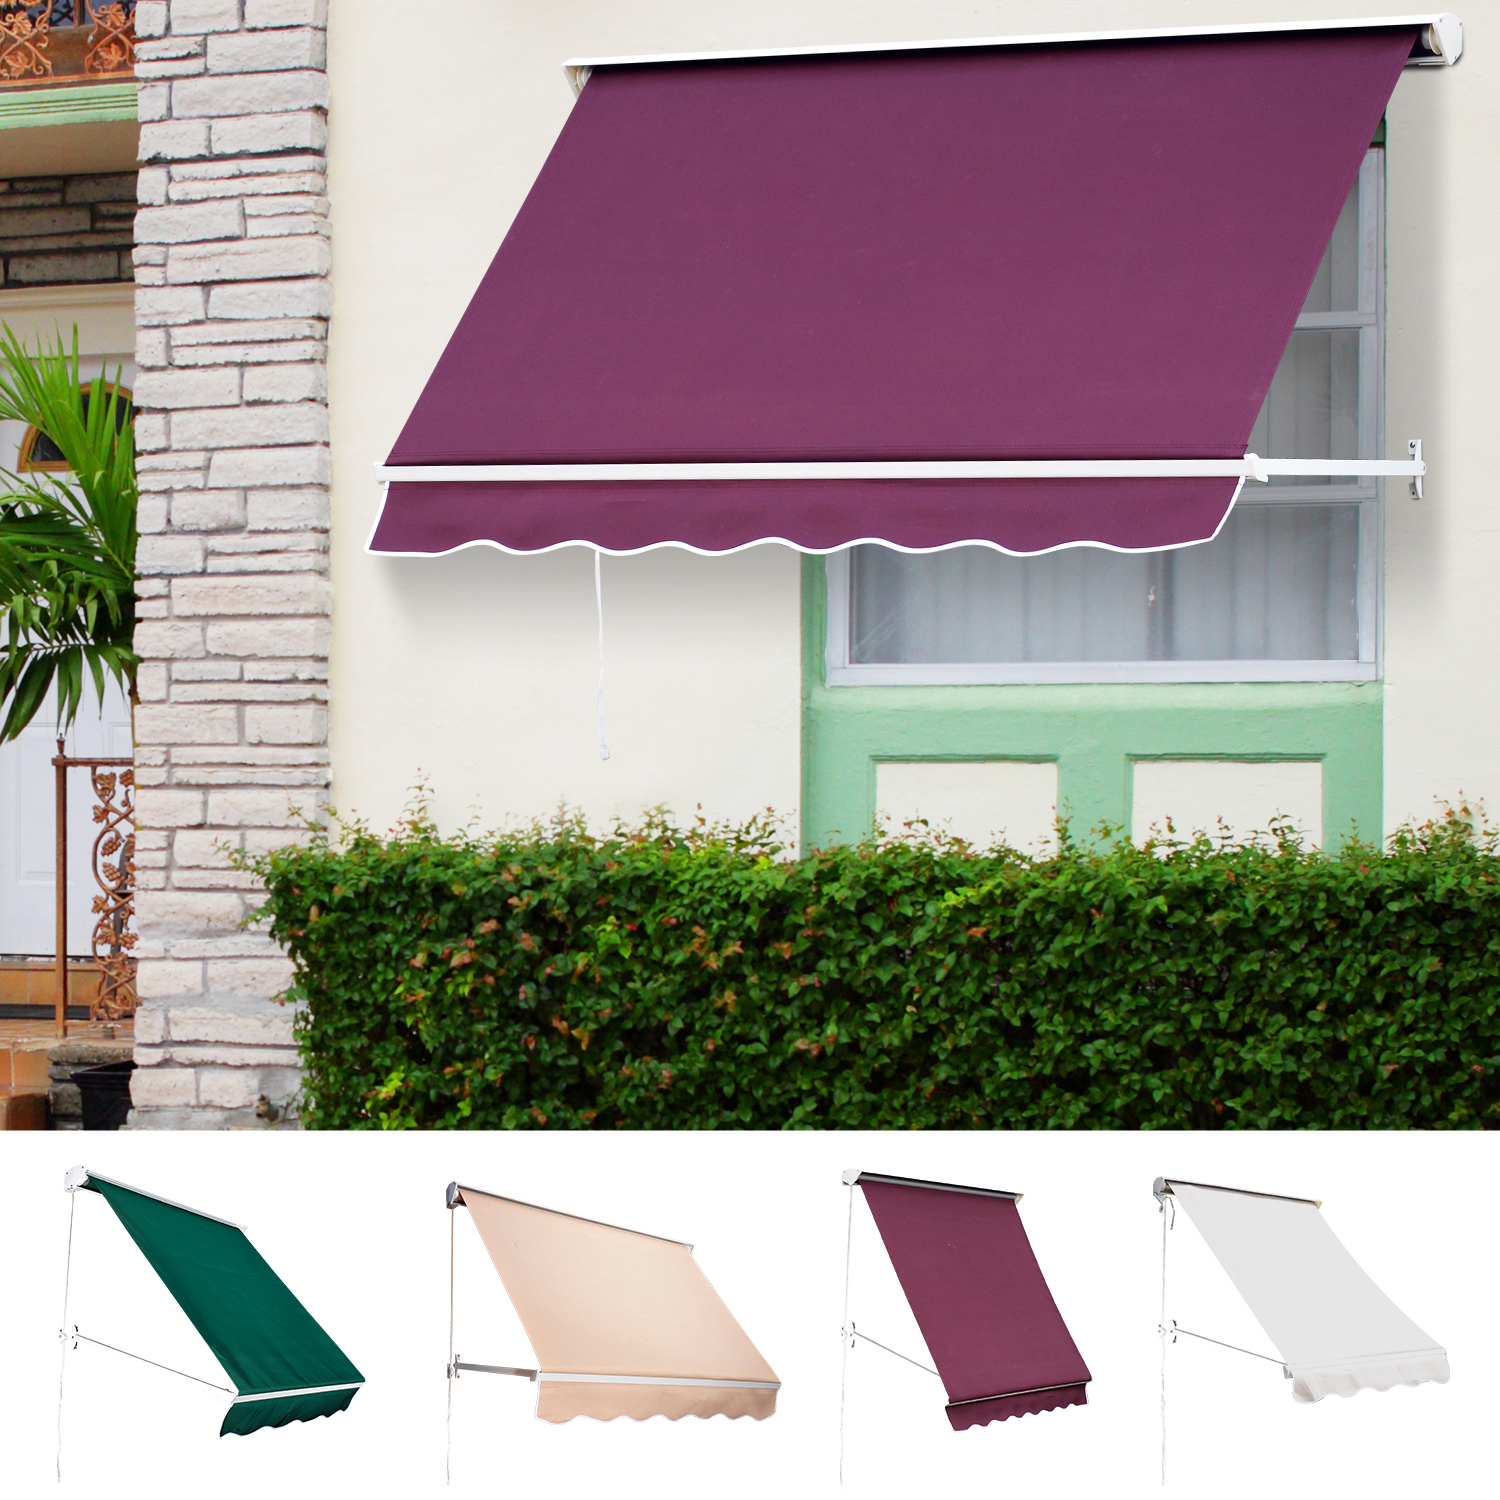 competitive price 7a5df 96e6e Details about Window Awning Manual Retractable Outdoor Patio Canopy Sun  Shade Shelter Drop Arm